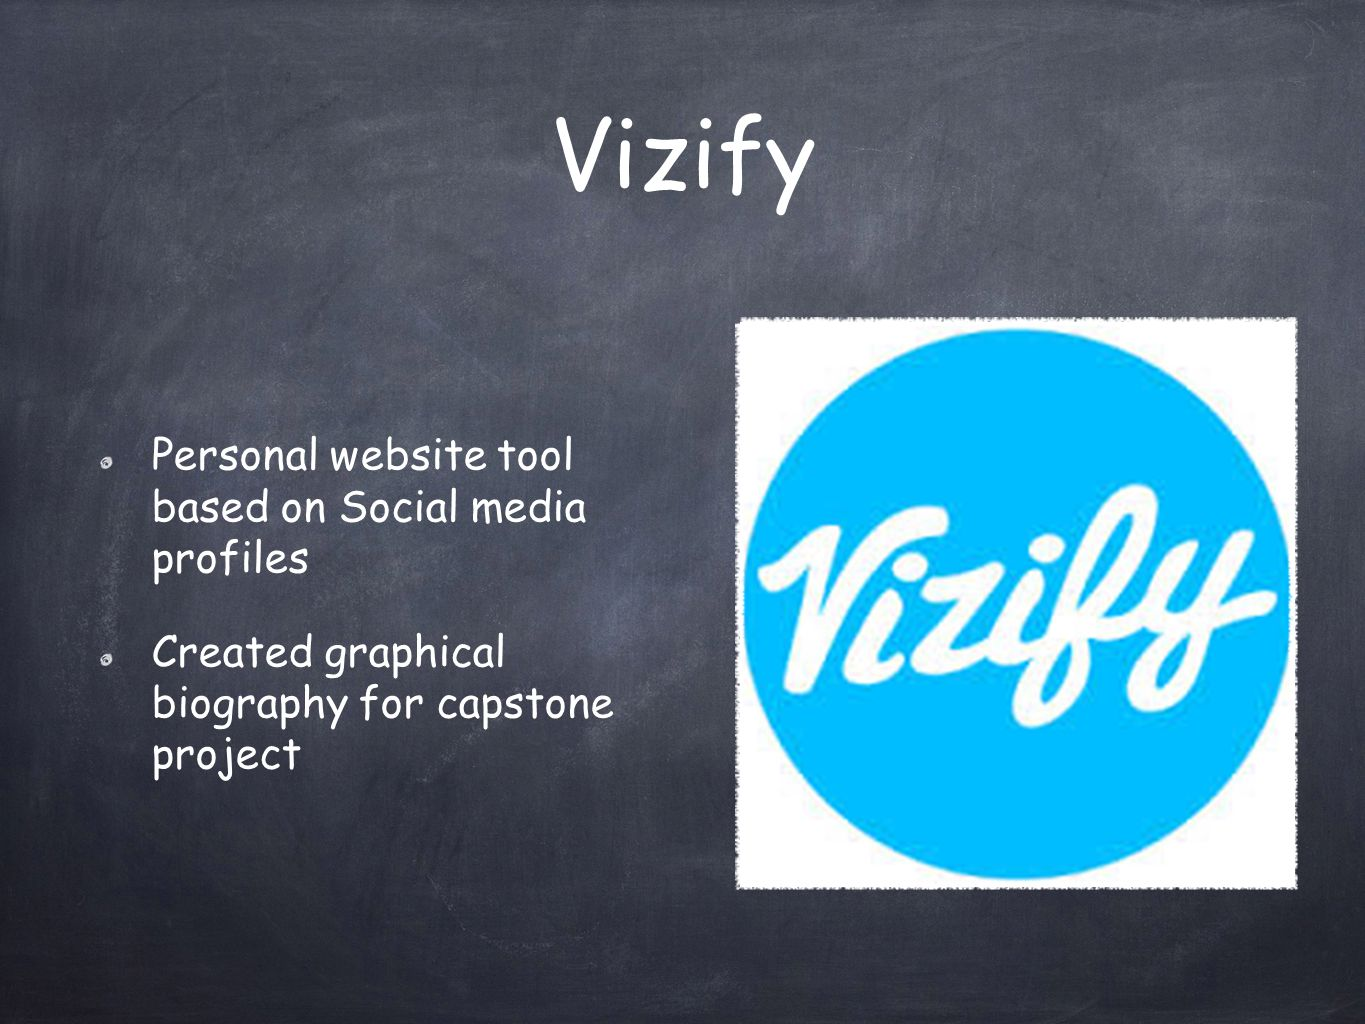 Vizify Personal website tool based on Social media profiles Created graphical biography for capstone project